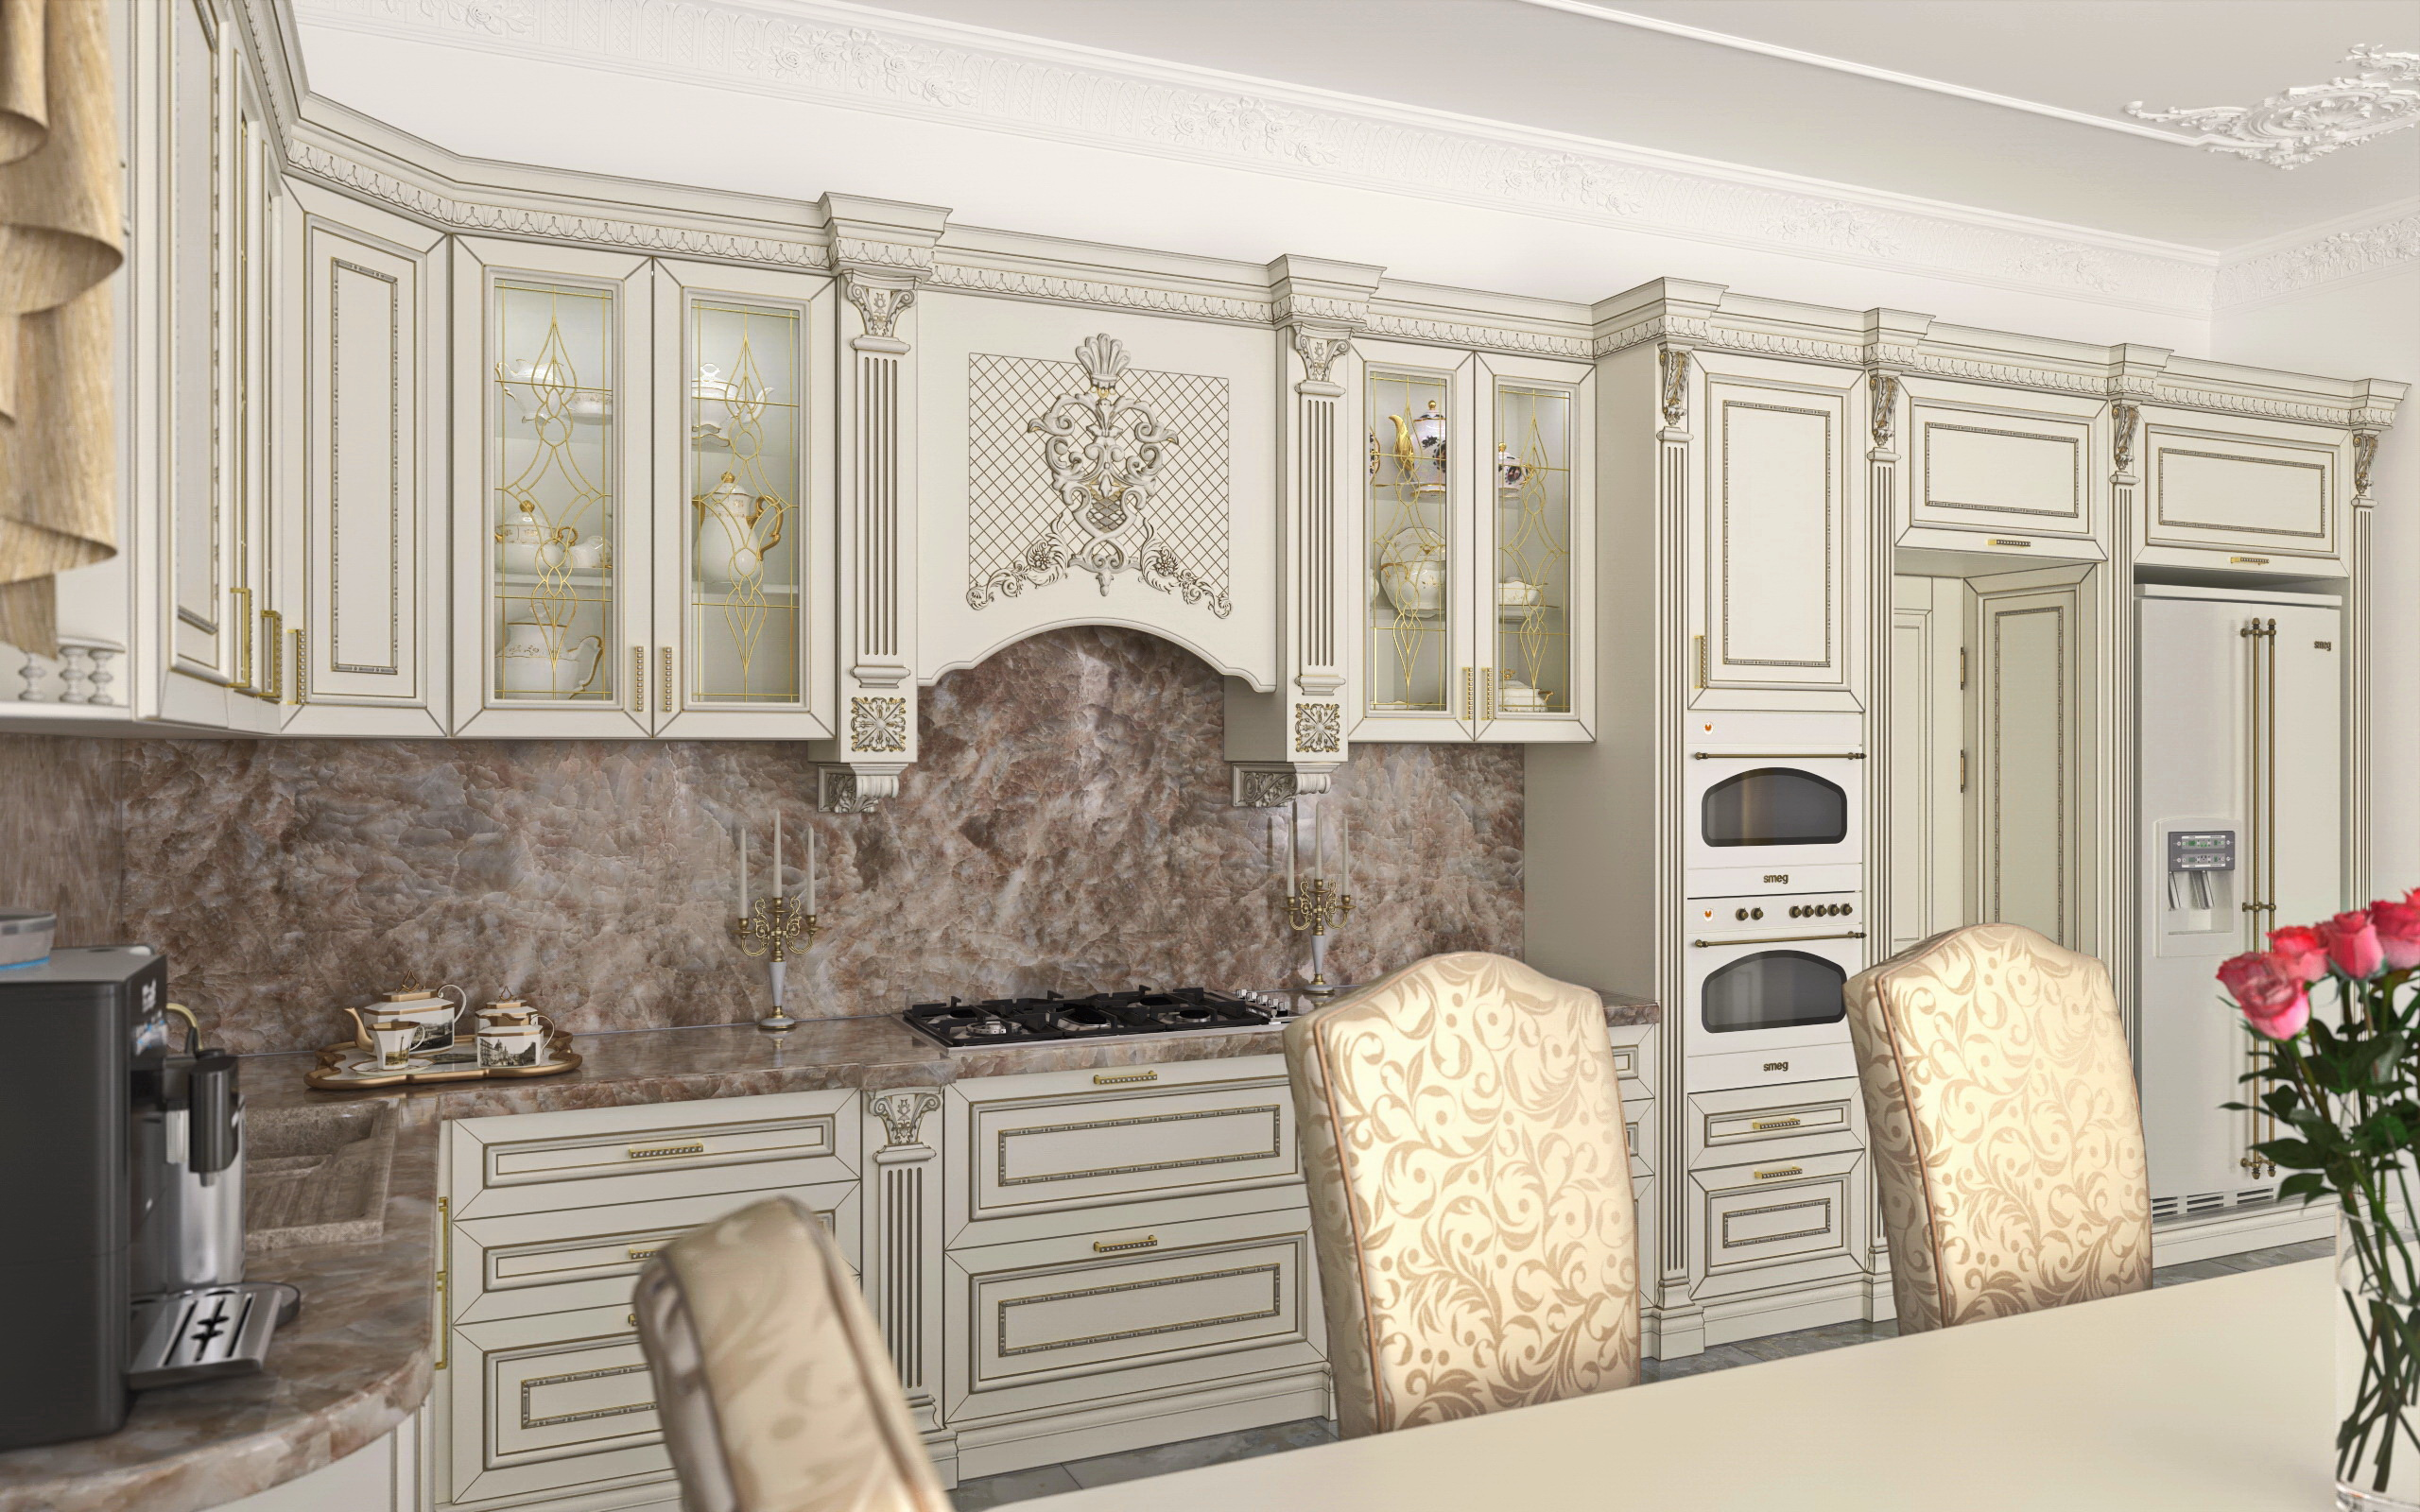 Kitchen-Beautiful house in SolidWorks vray 3.0 image